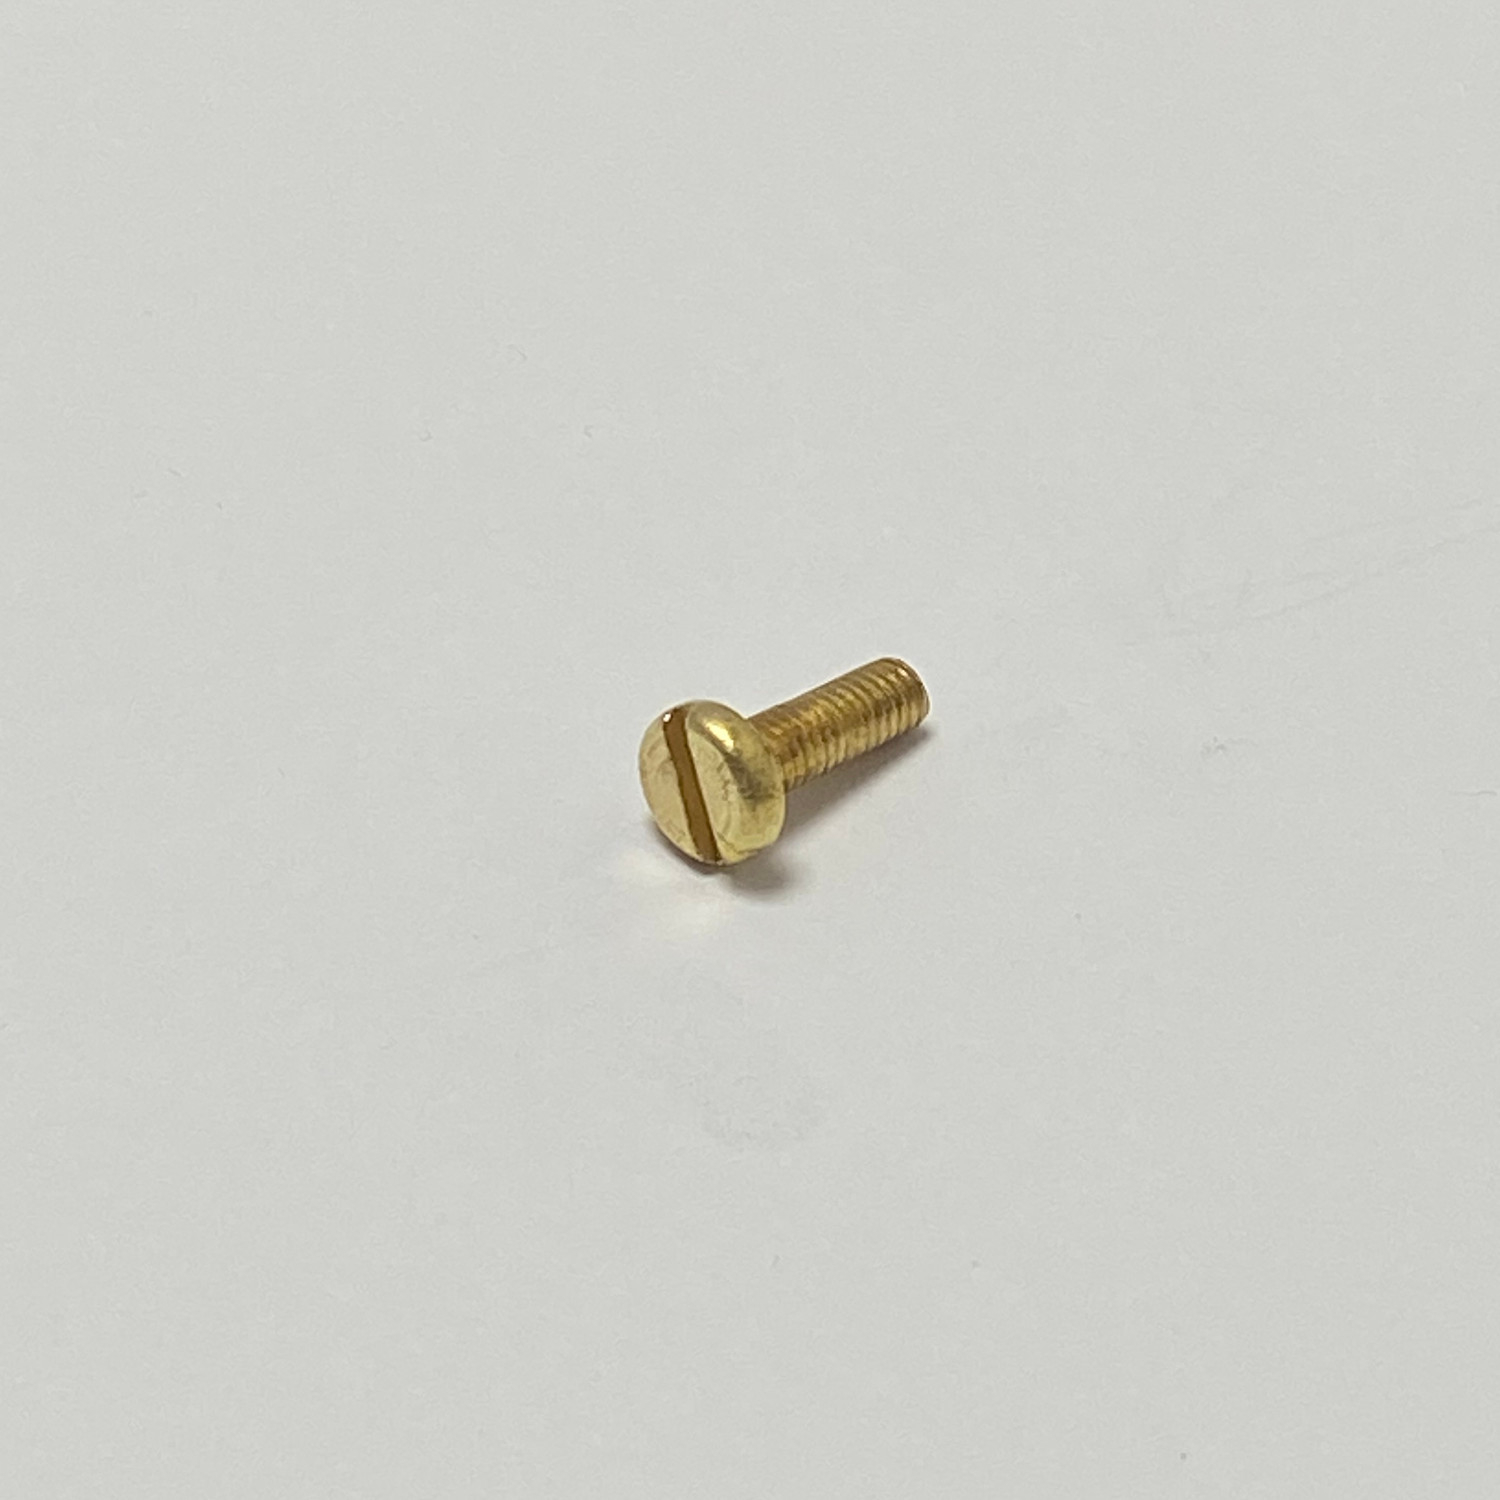 M3 X 20 BRASS SLOTTED CHEESE SCREWS